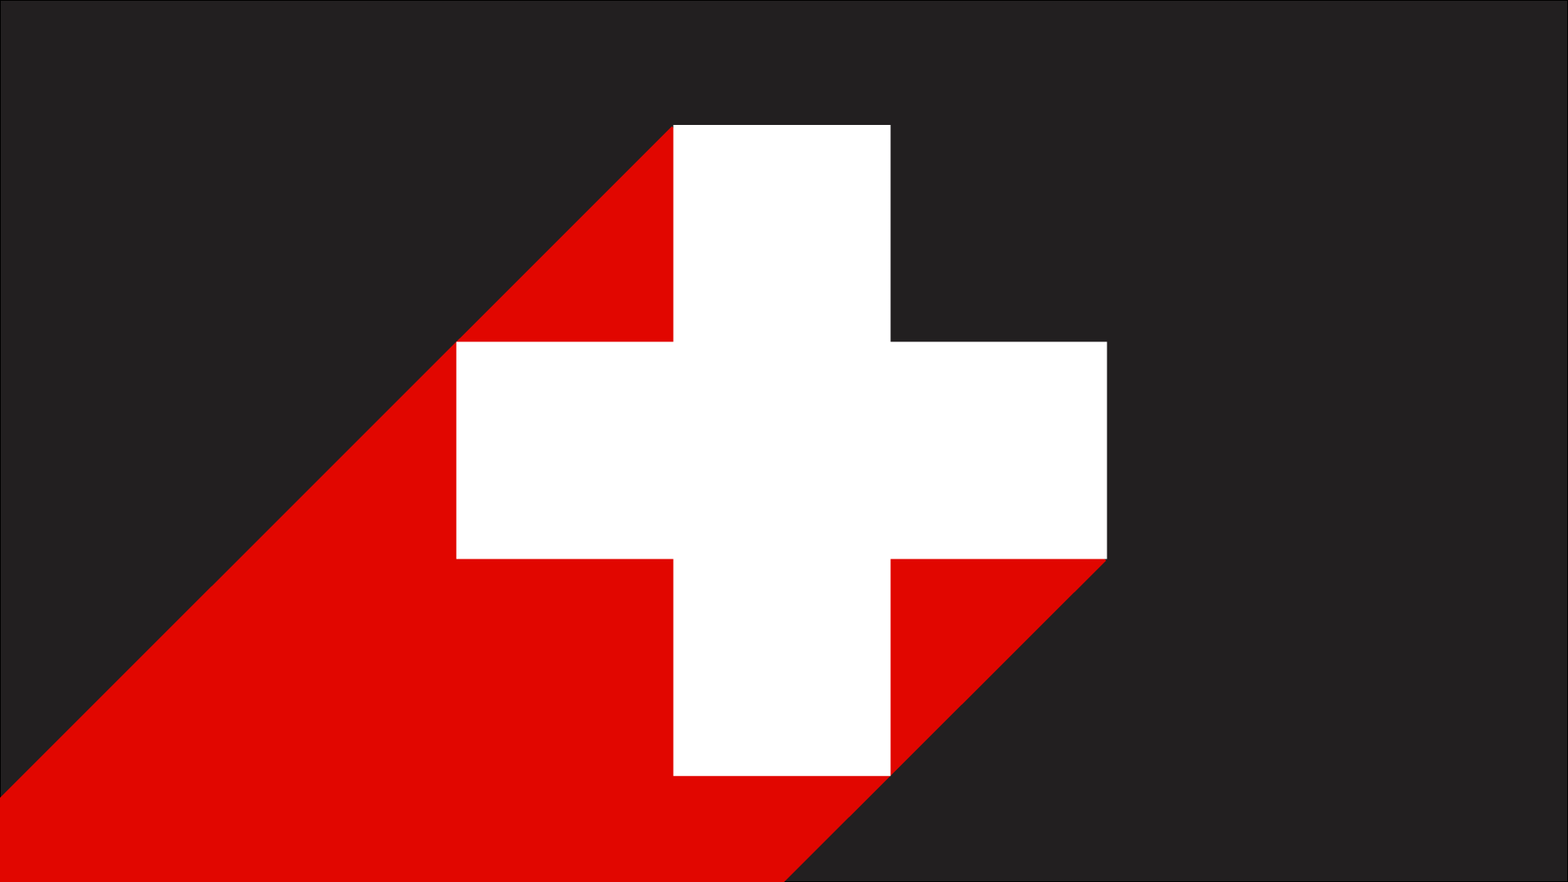 A red cross on a black background